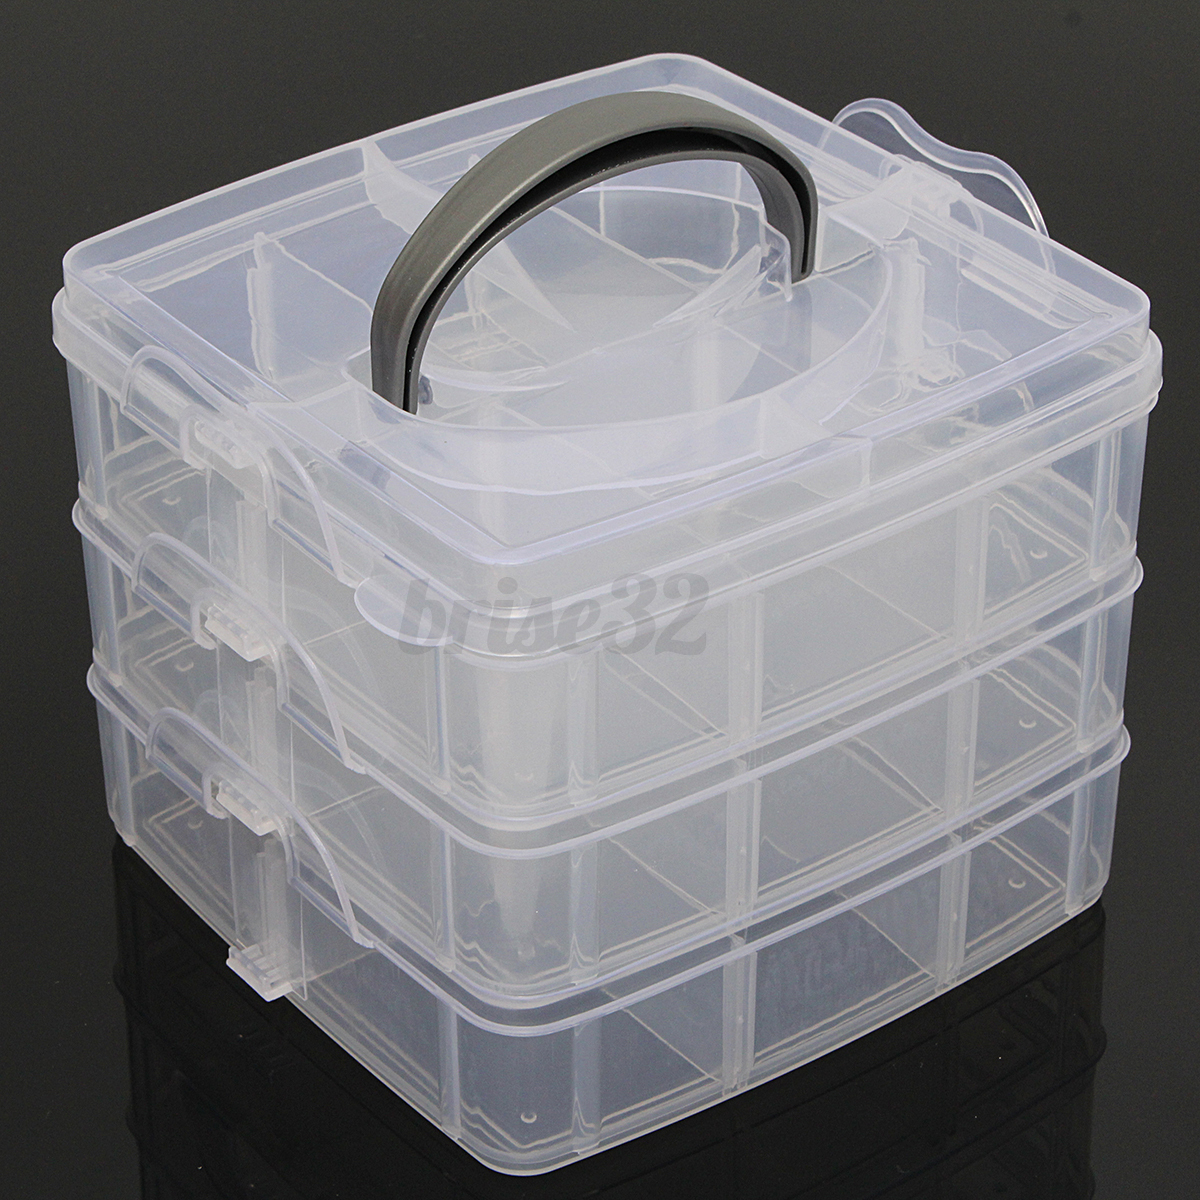 Jewellery Packaging And Bead Storage With: New Clear Plastic Jewelry Bead Storage Box Container